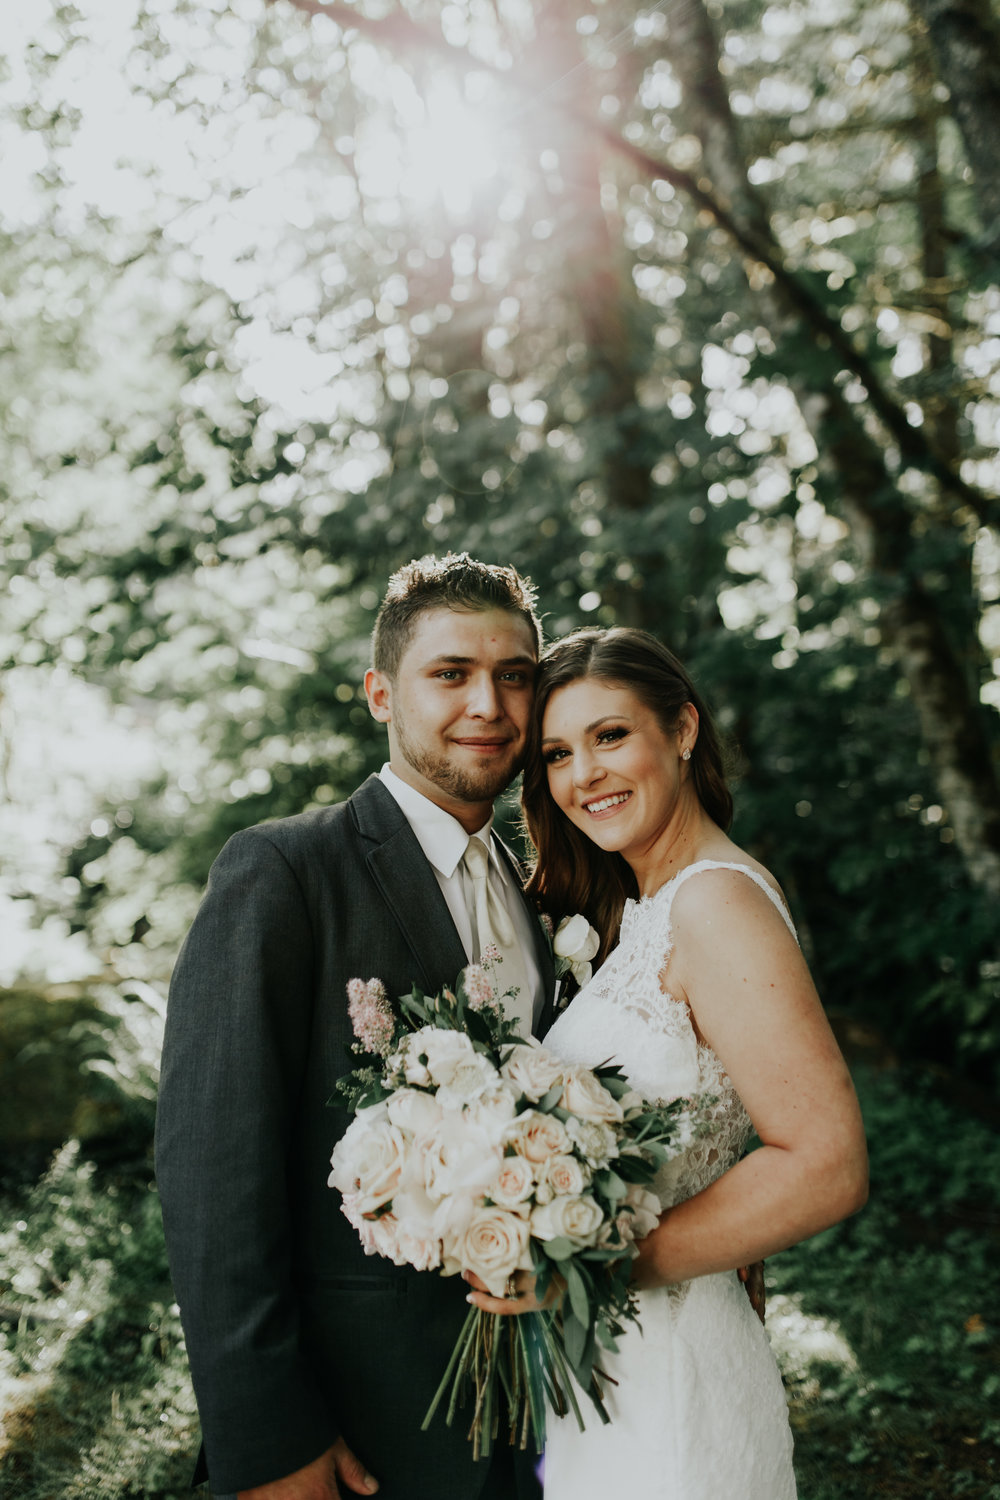 ramirez wedding portland oregon hornings hideout rain moody trendy bride groom